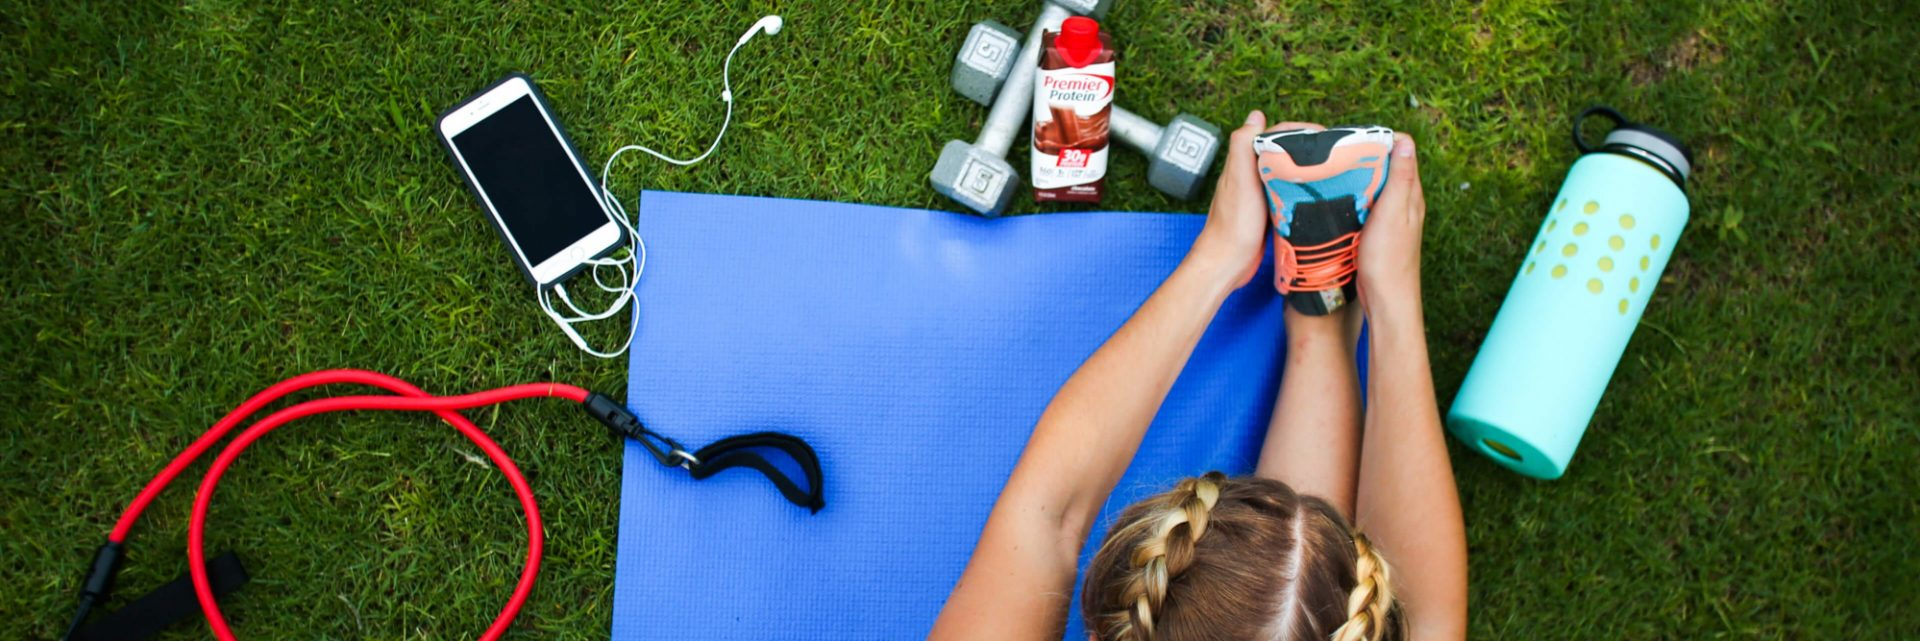 A person exercising with Premier Protein near.